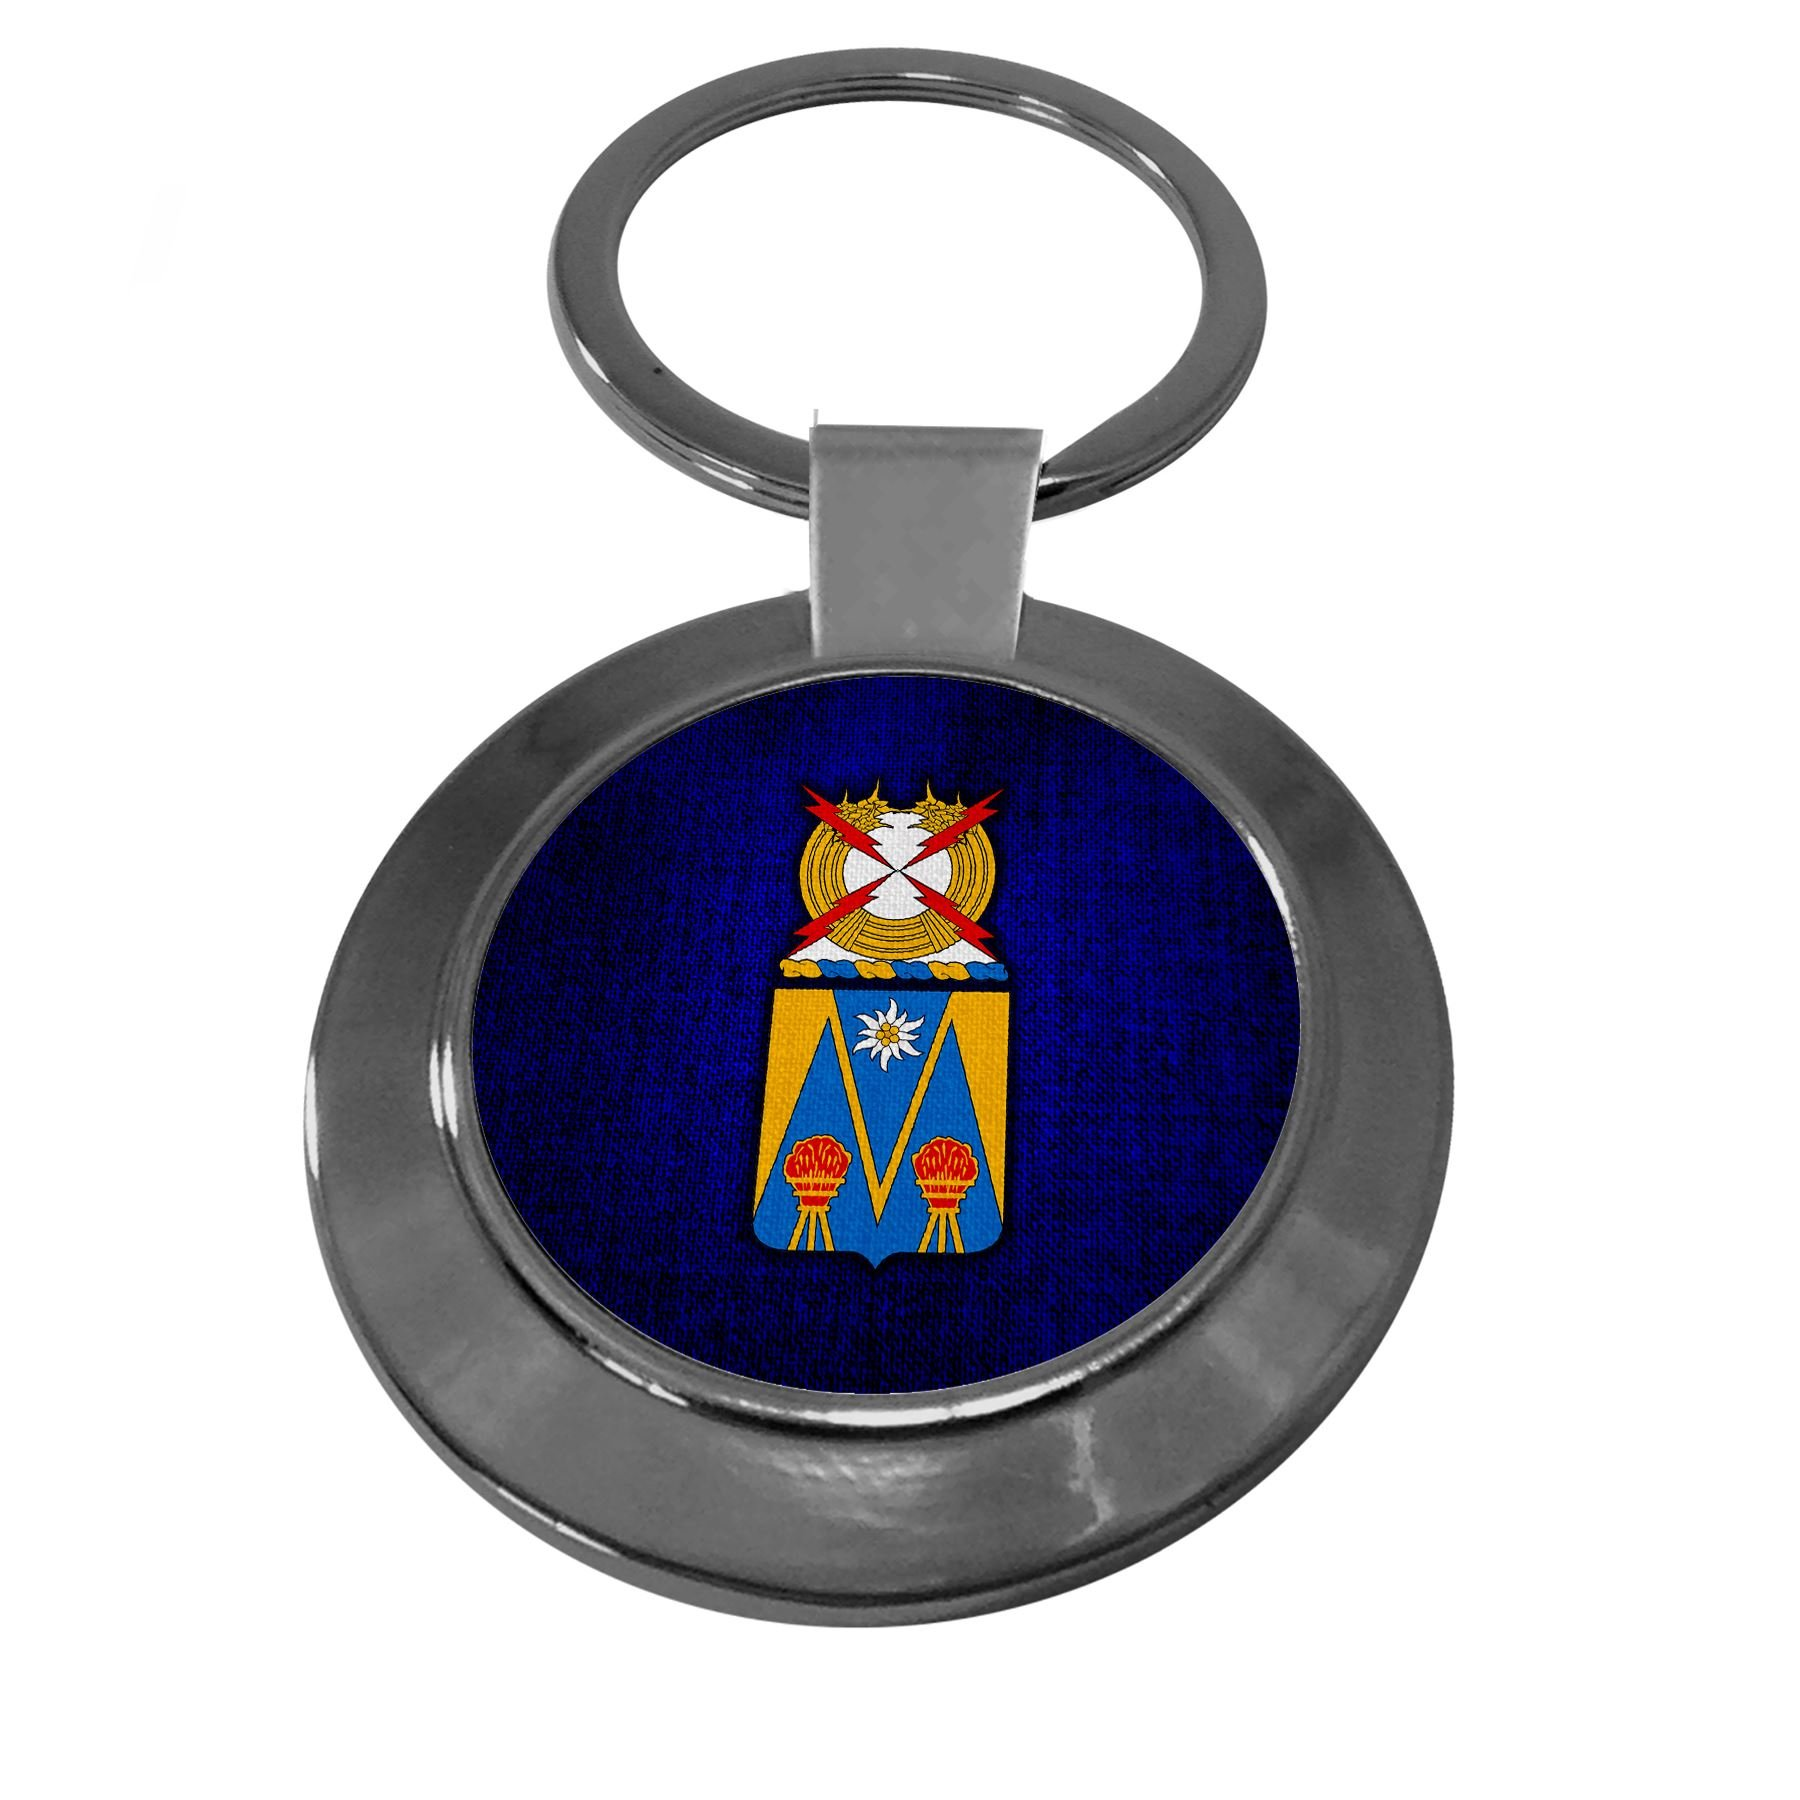 Premium Key Ring with U.S. Army 303rd Military Intelligence Battalion, coat of arms